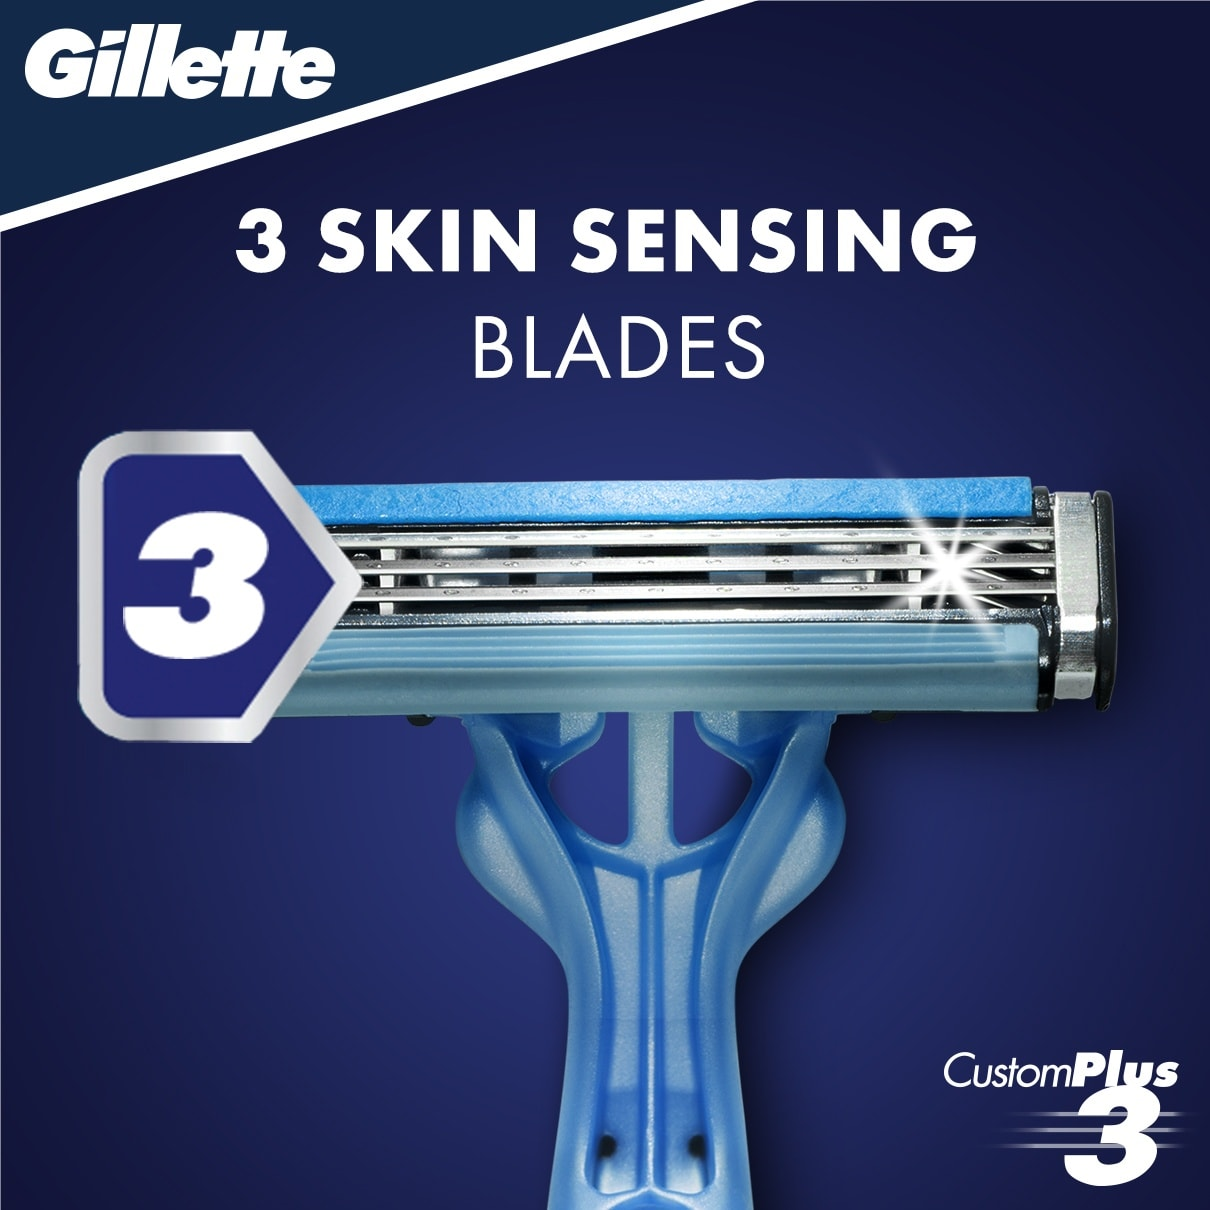 CUSTOMPLUS® 3 SENSITIVE DISPOSABLE RAZOR